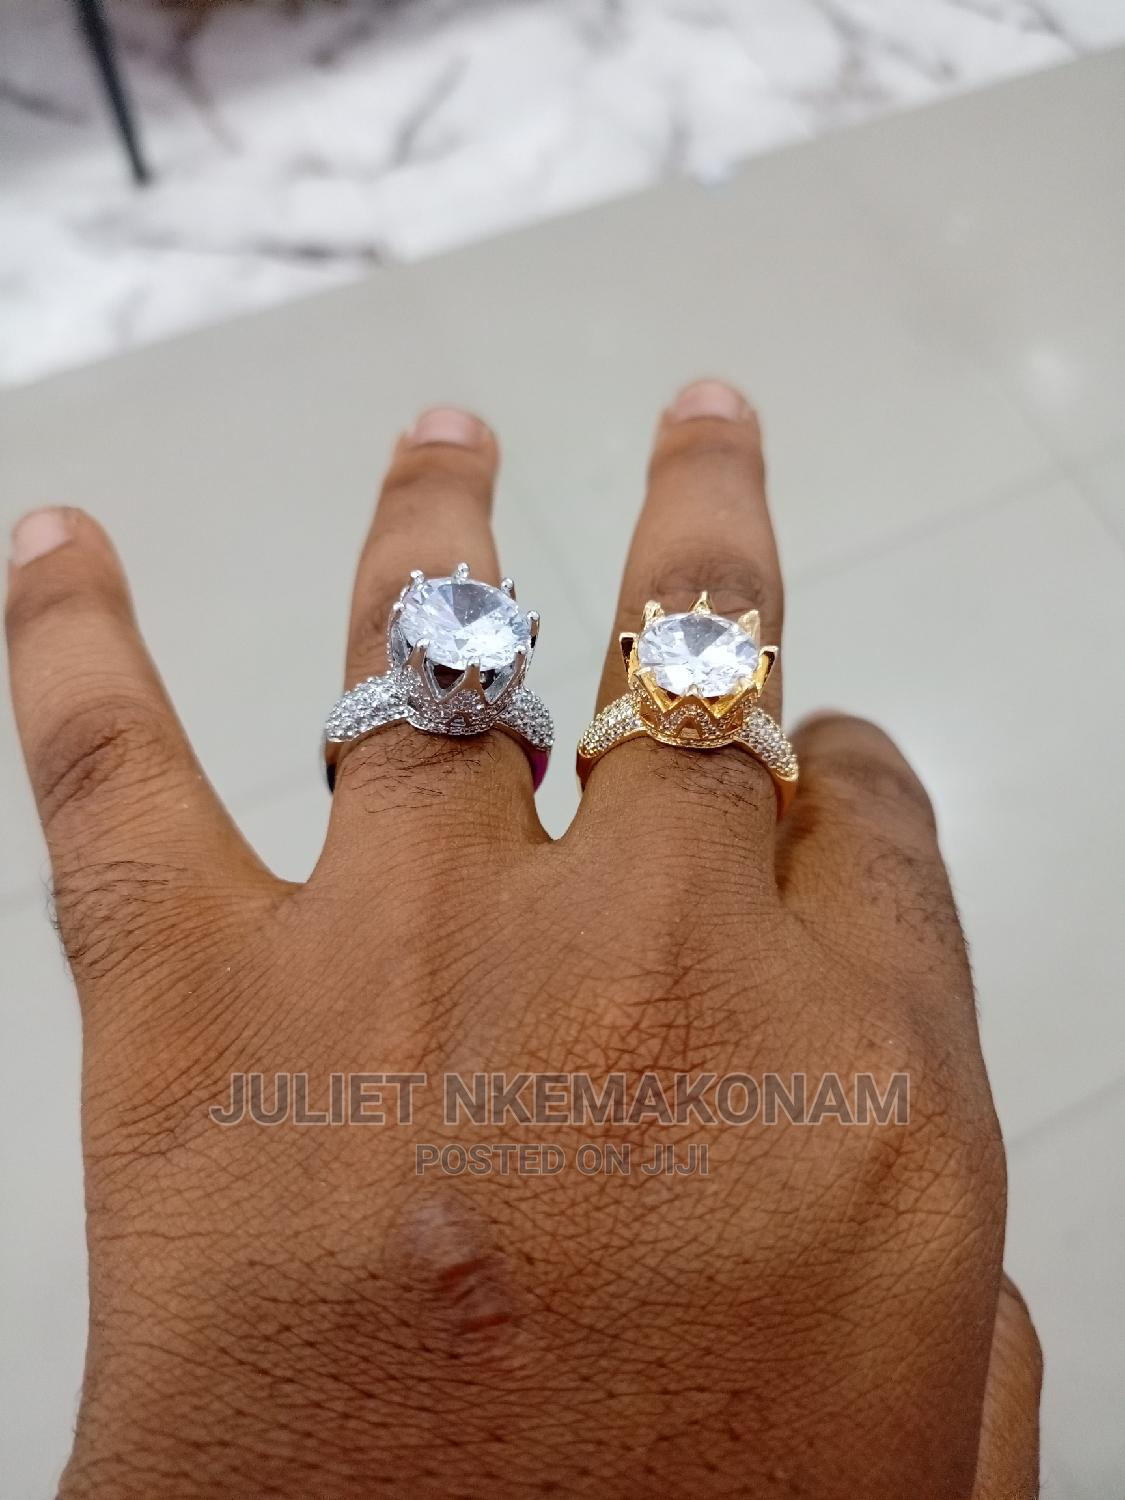 Archive: Engagement Ring And Wedding Ring